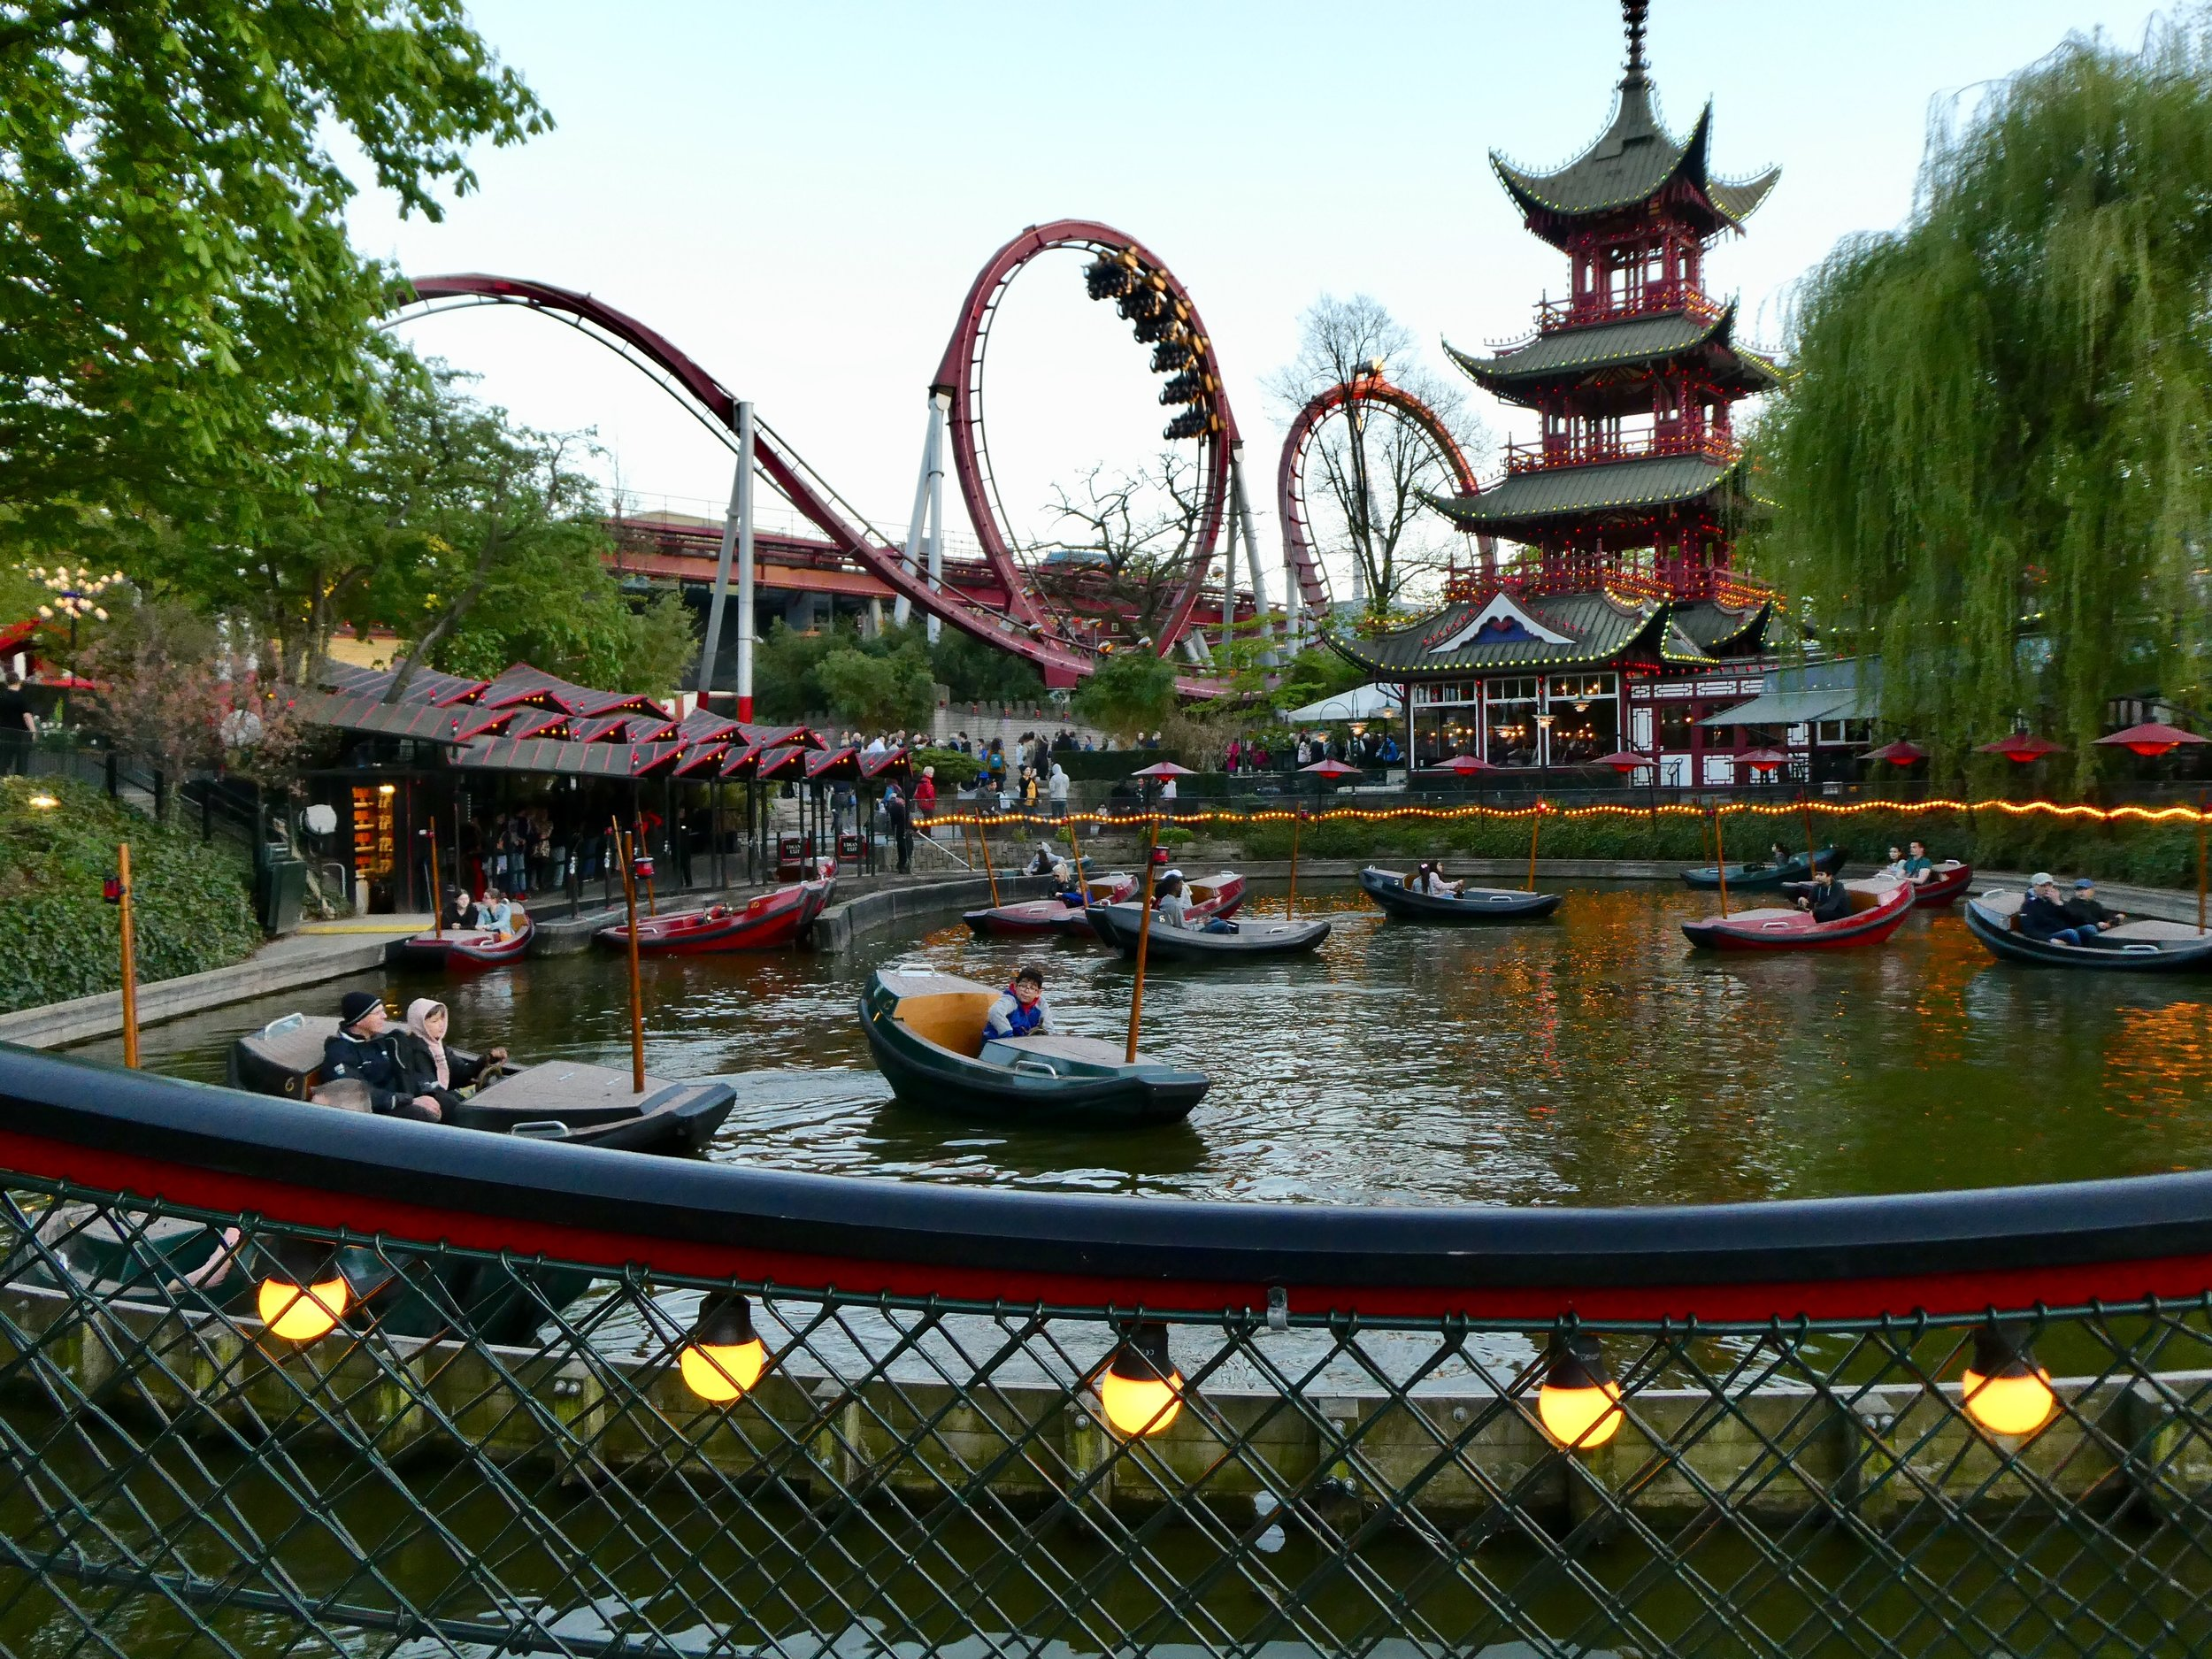 Tivoli and its well-tended gardens.